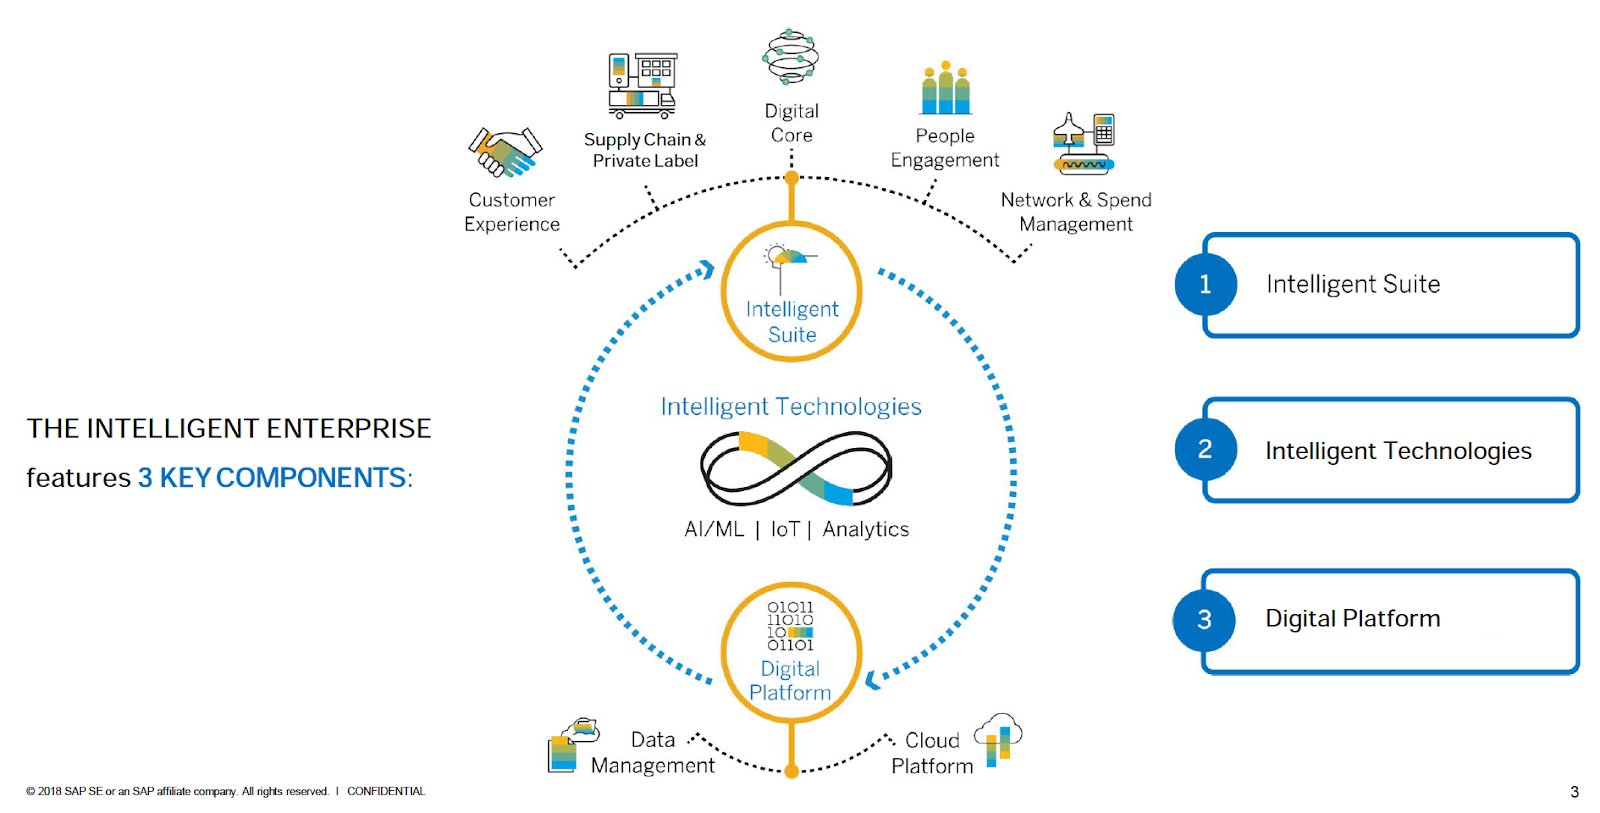 3 Key components of The Intelligent Enterprise